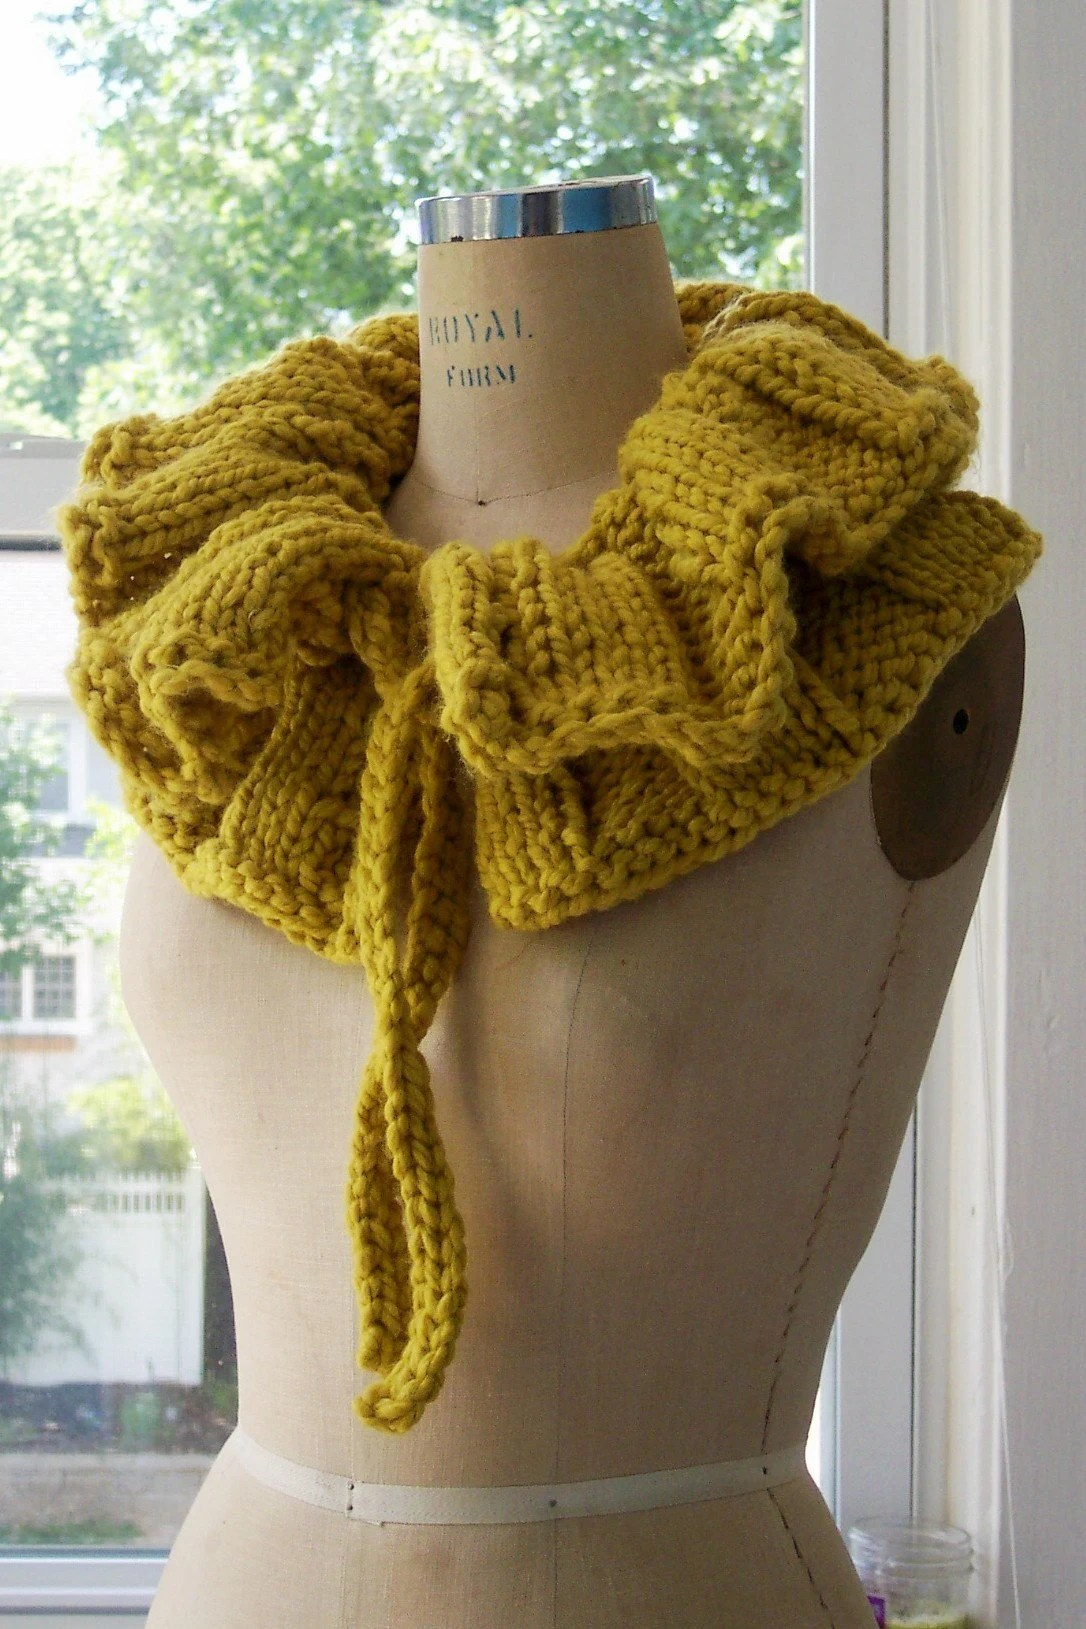 would i look cool or silly in a neck ruff? lemonlime muff, $55.80 from MegnificientCo.